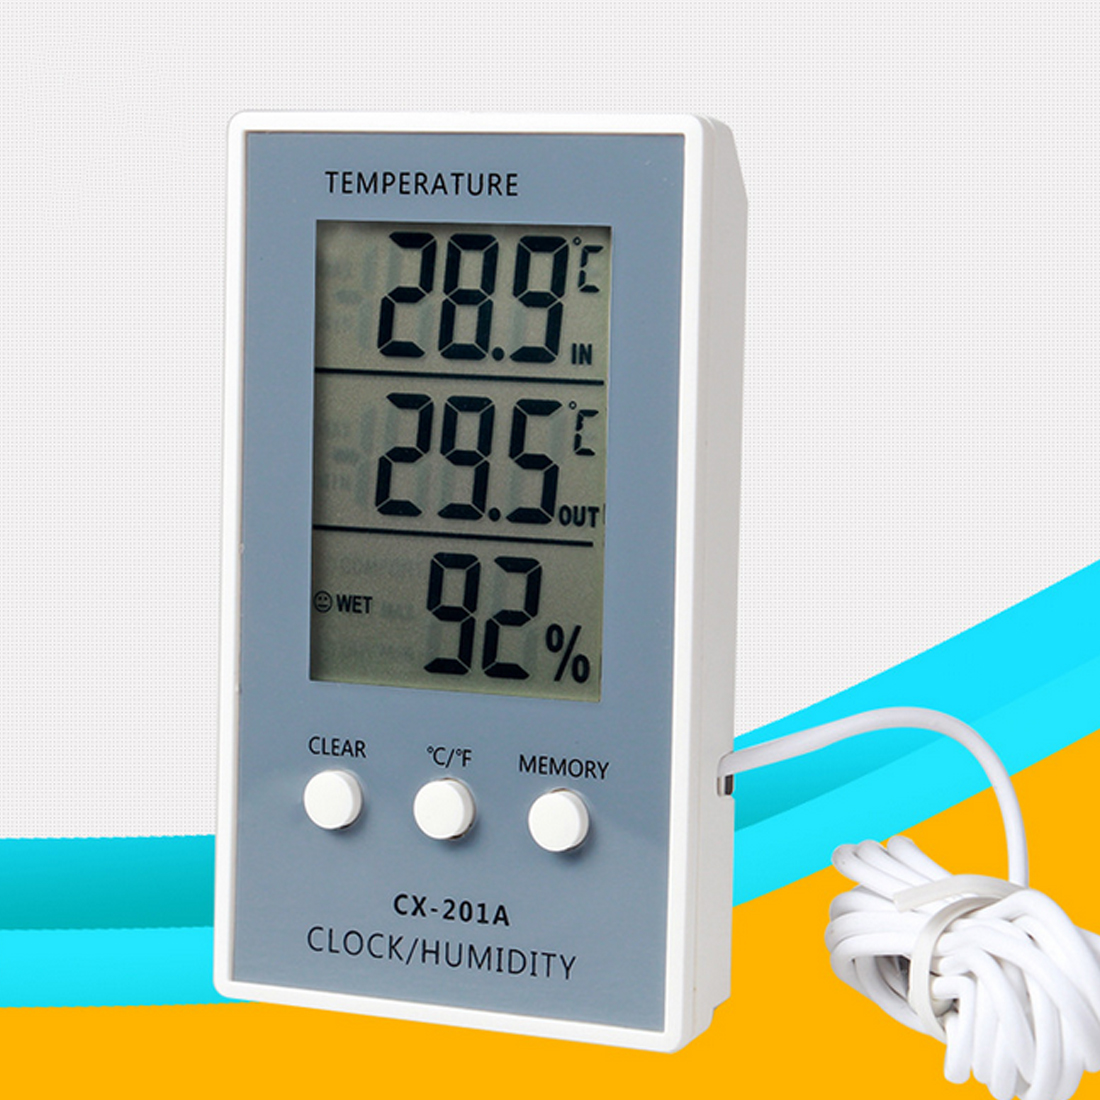 Digital Thermometer Hygrometer Indoor Outdoor Temperature Humidity Meter C/F LCD Display Sensor Probe Weather Station outdoor portable water temperature measurement lcd digital display thermometer waterproof probe for aquarium freezer